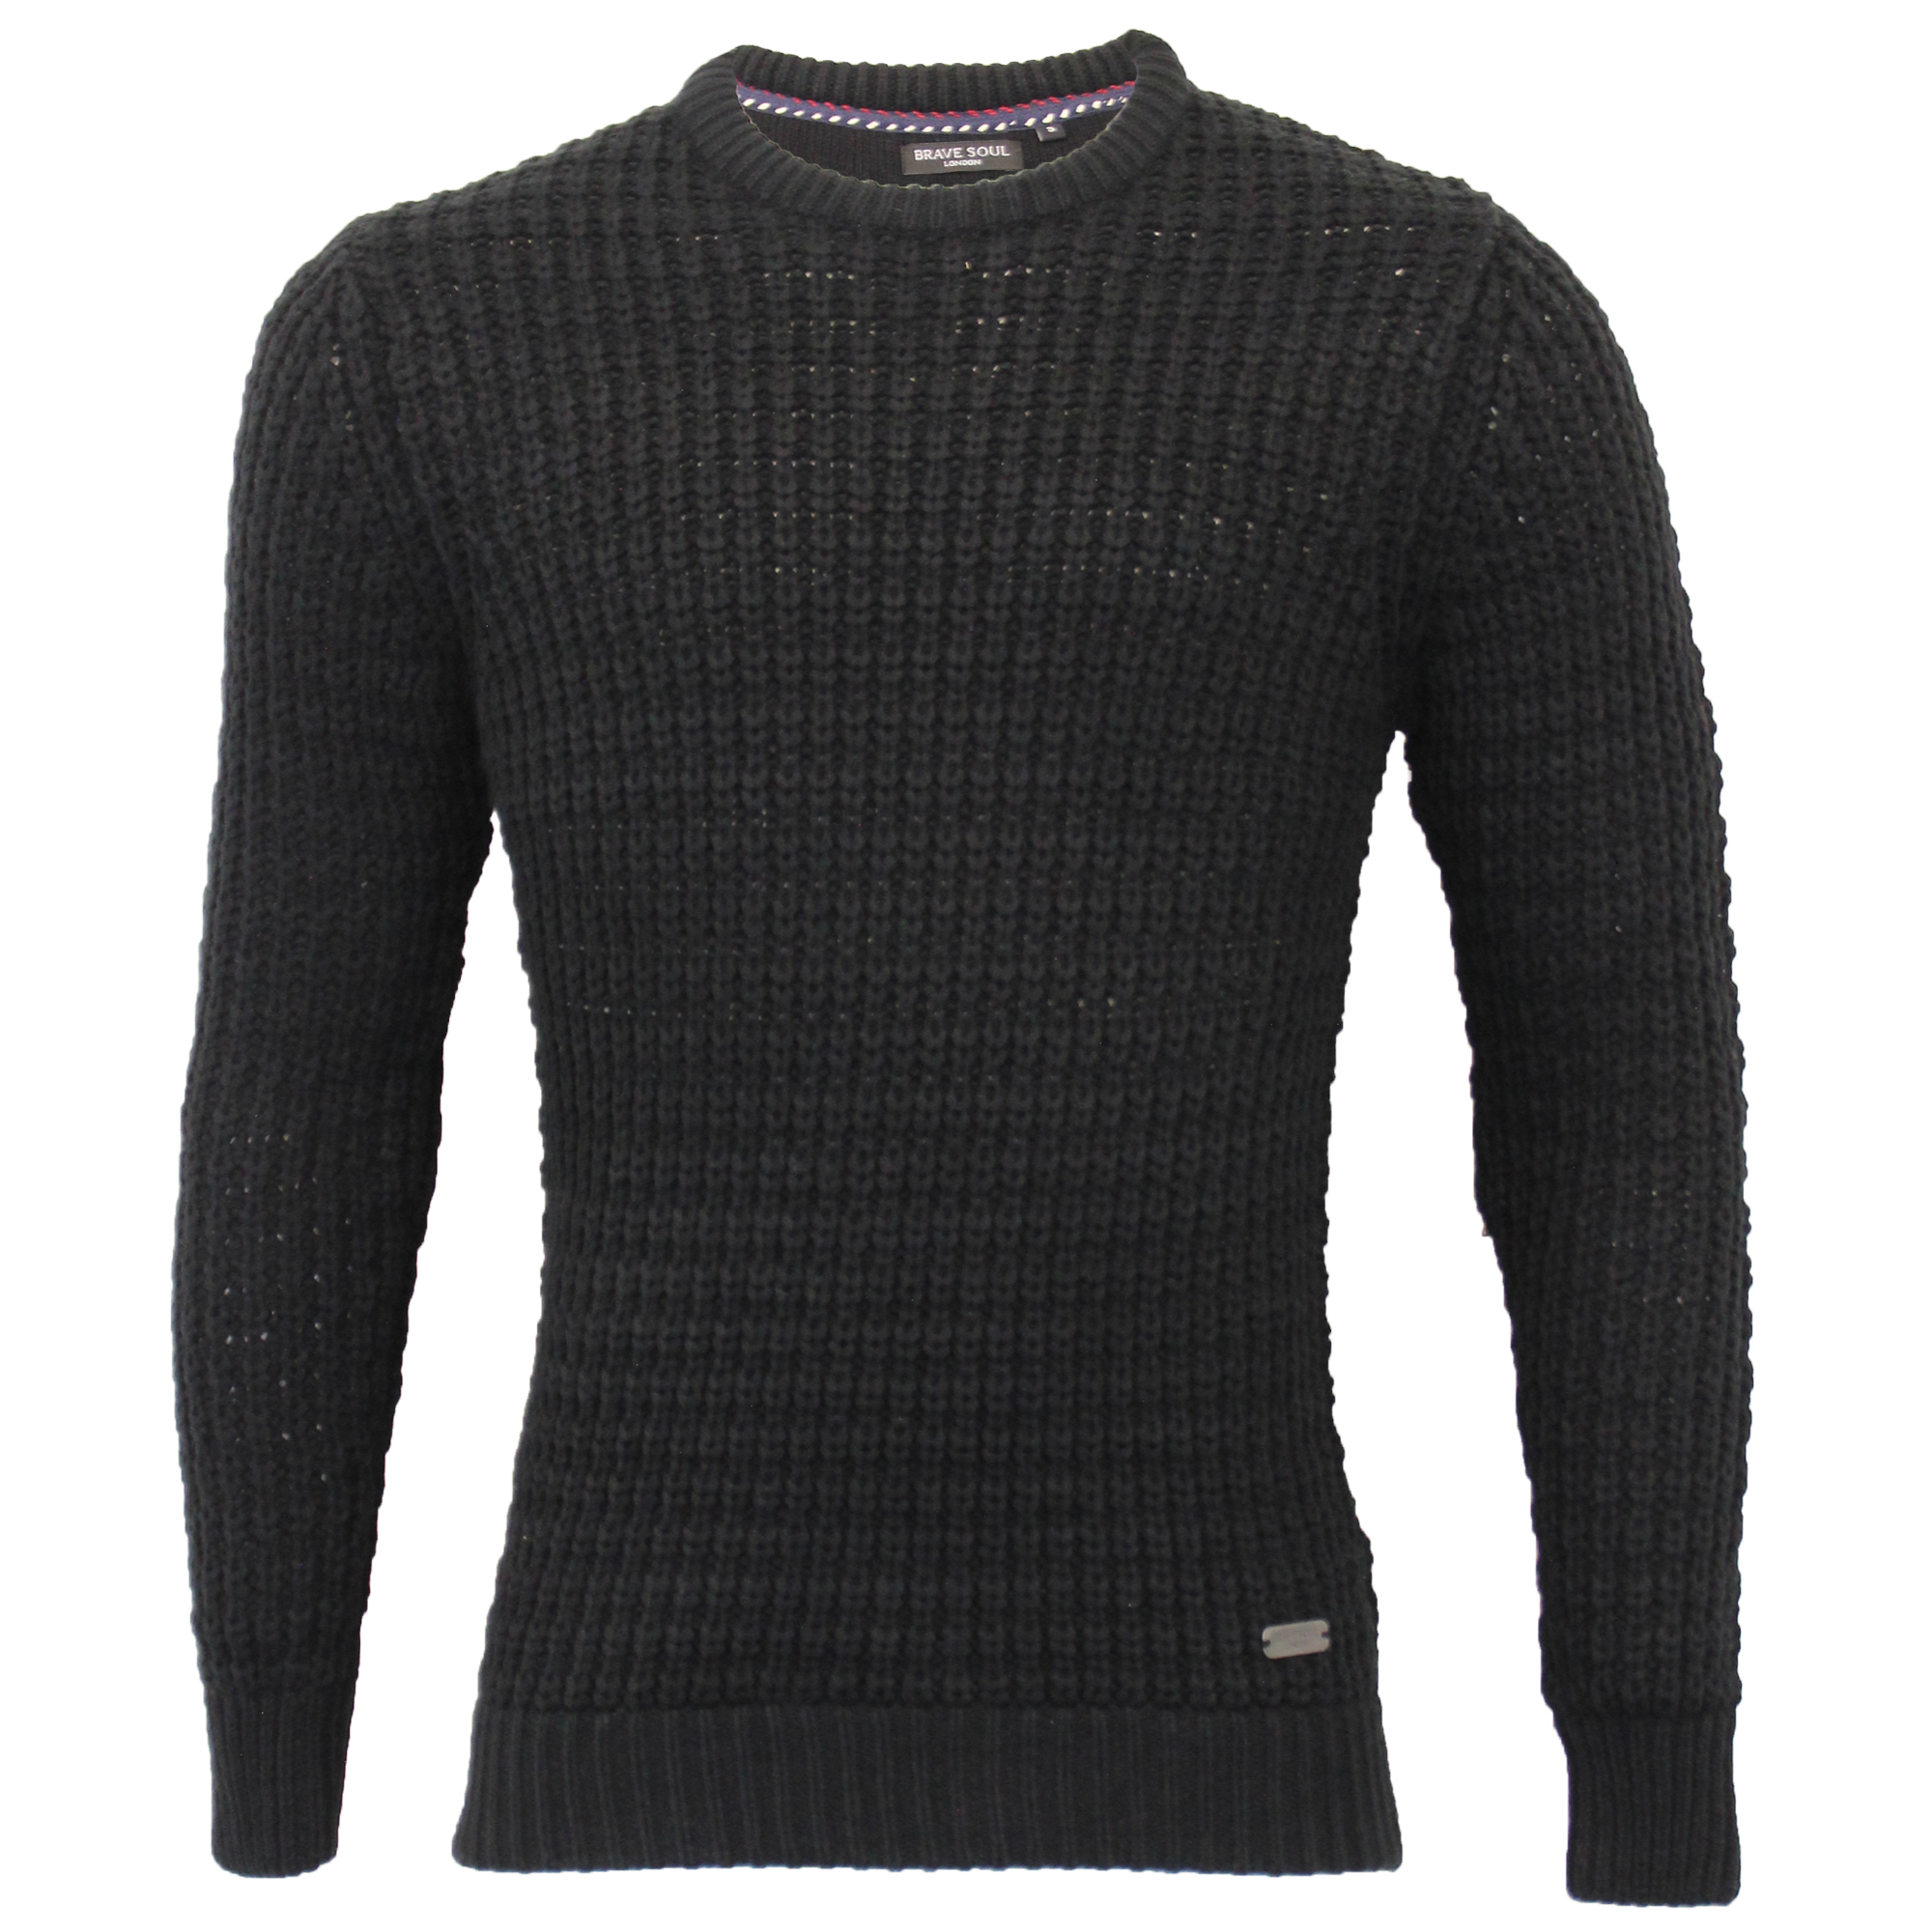 Mens-Cable-Knitted-Jumper-Brave-Soul-DIRAC-Crew-Neck-Pullover-Top-Winter-Fashion thumbnail 5